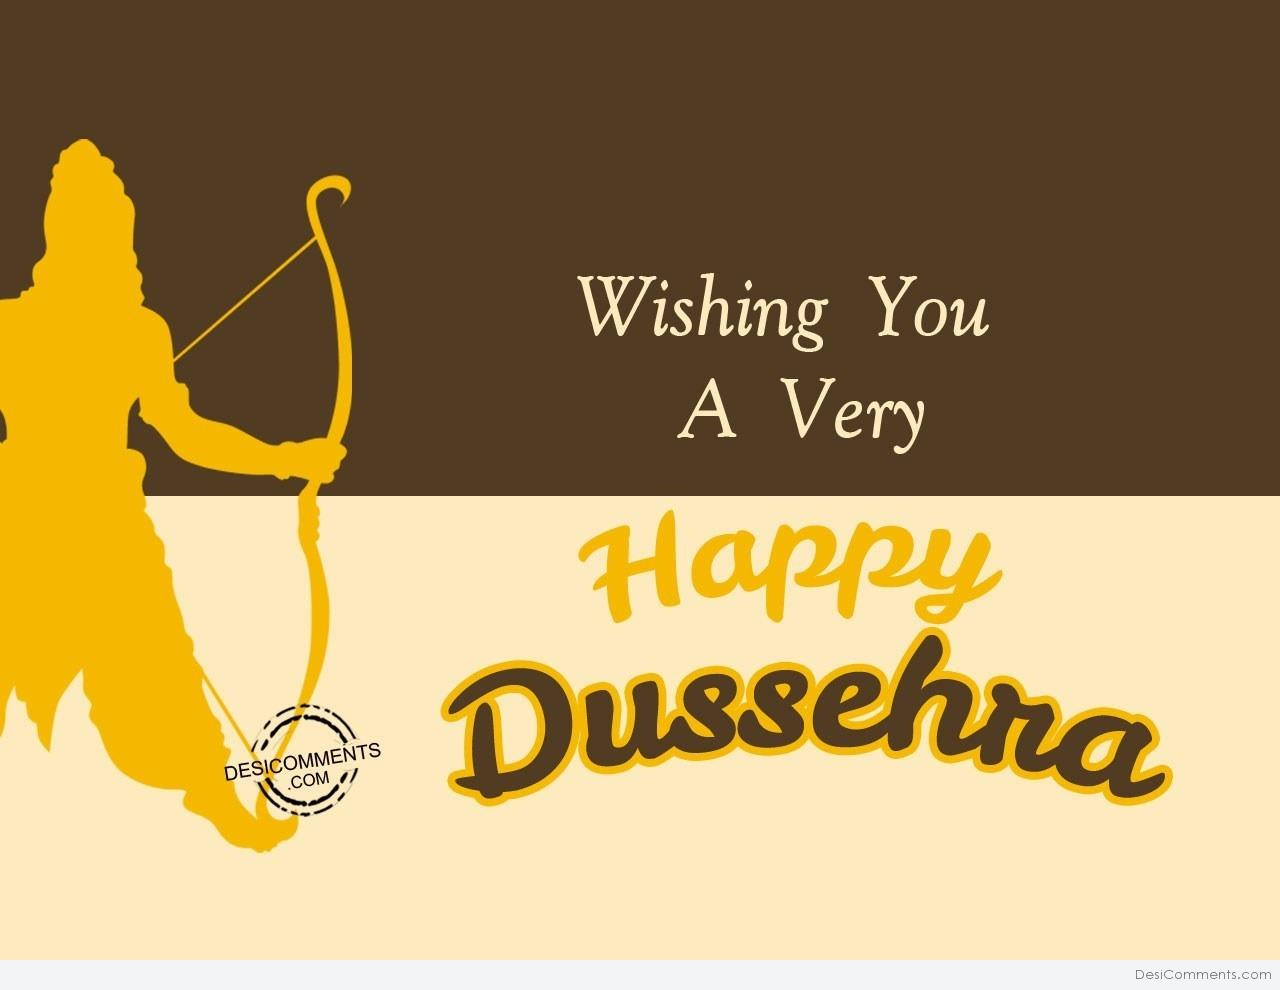 Dussehra Pictures, Images, Graphics - Page 2